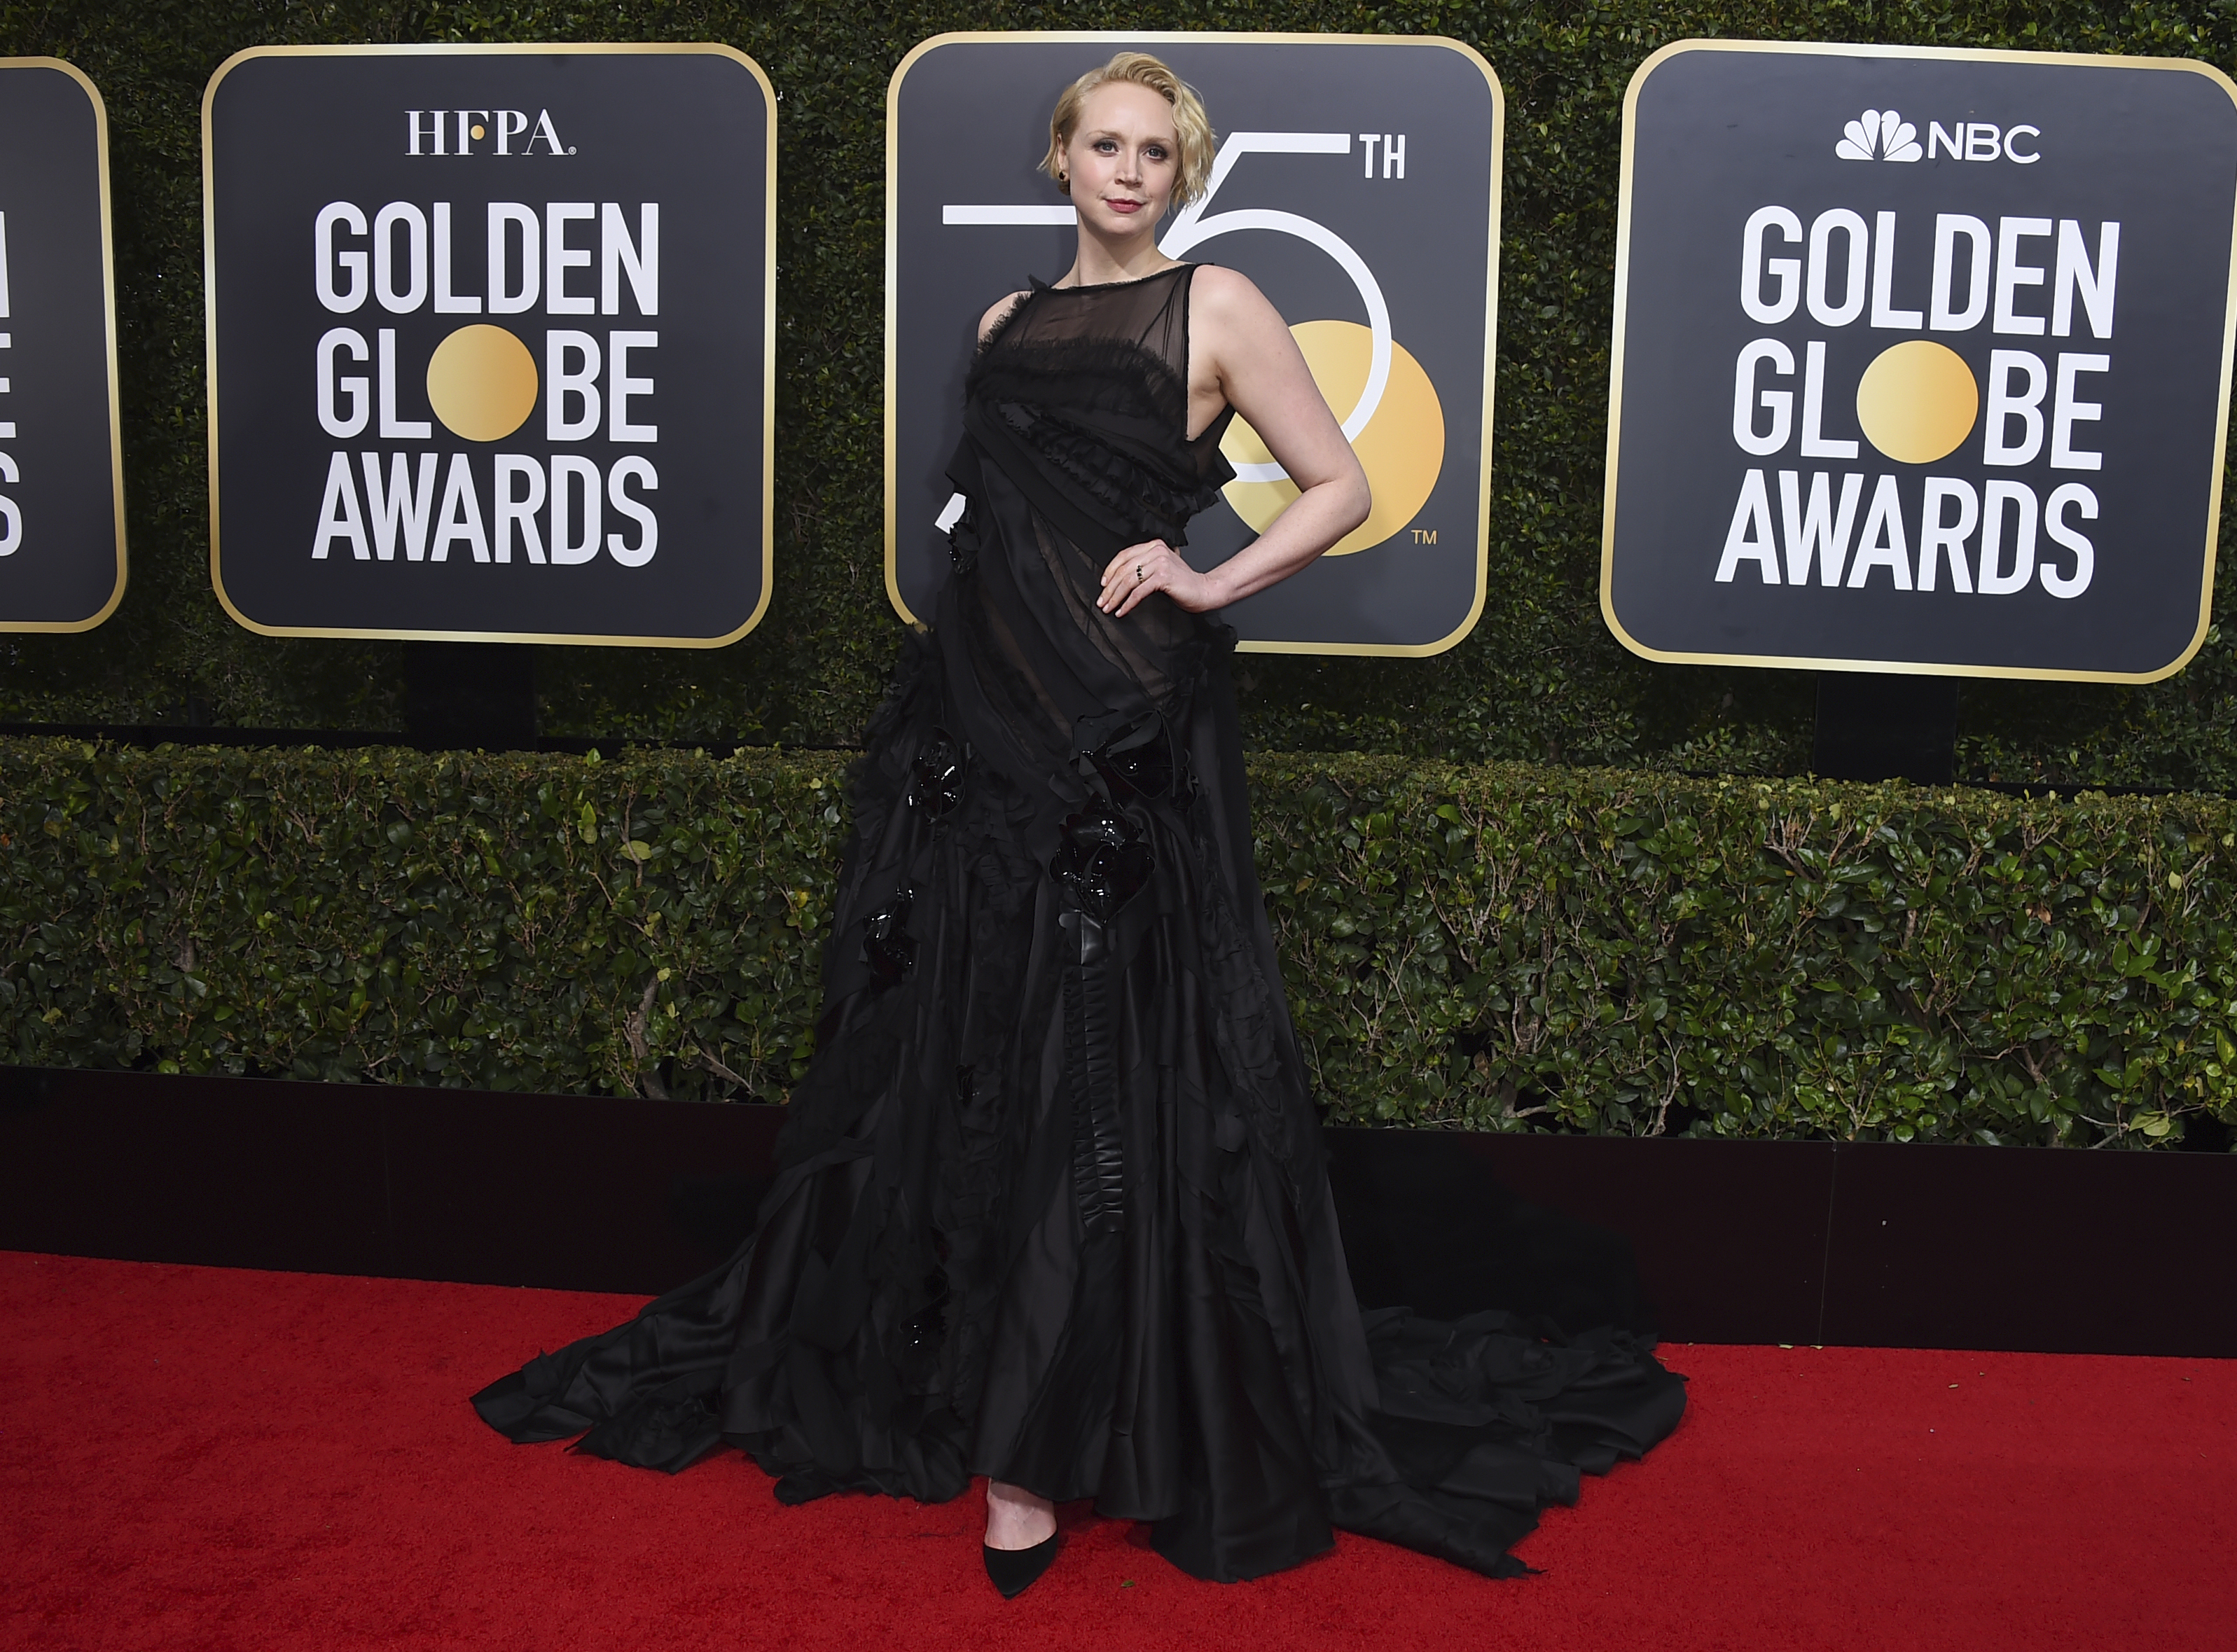 <div class='meta'><div class='origin-logo' data-origin='AP'></div><span class='caption-text' data-credit='Jordan Strauss/Invision/AP'>Gwendoline Christie arrives at the 75th annual Golden Globe Awards at the Beverly Hilton Hotel on Sunday, Jan. 7, 2018, in Beverly Hills, Calif.</span></div>